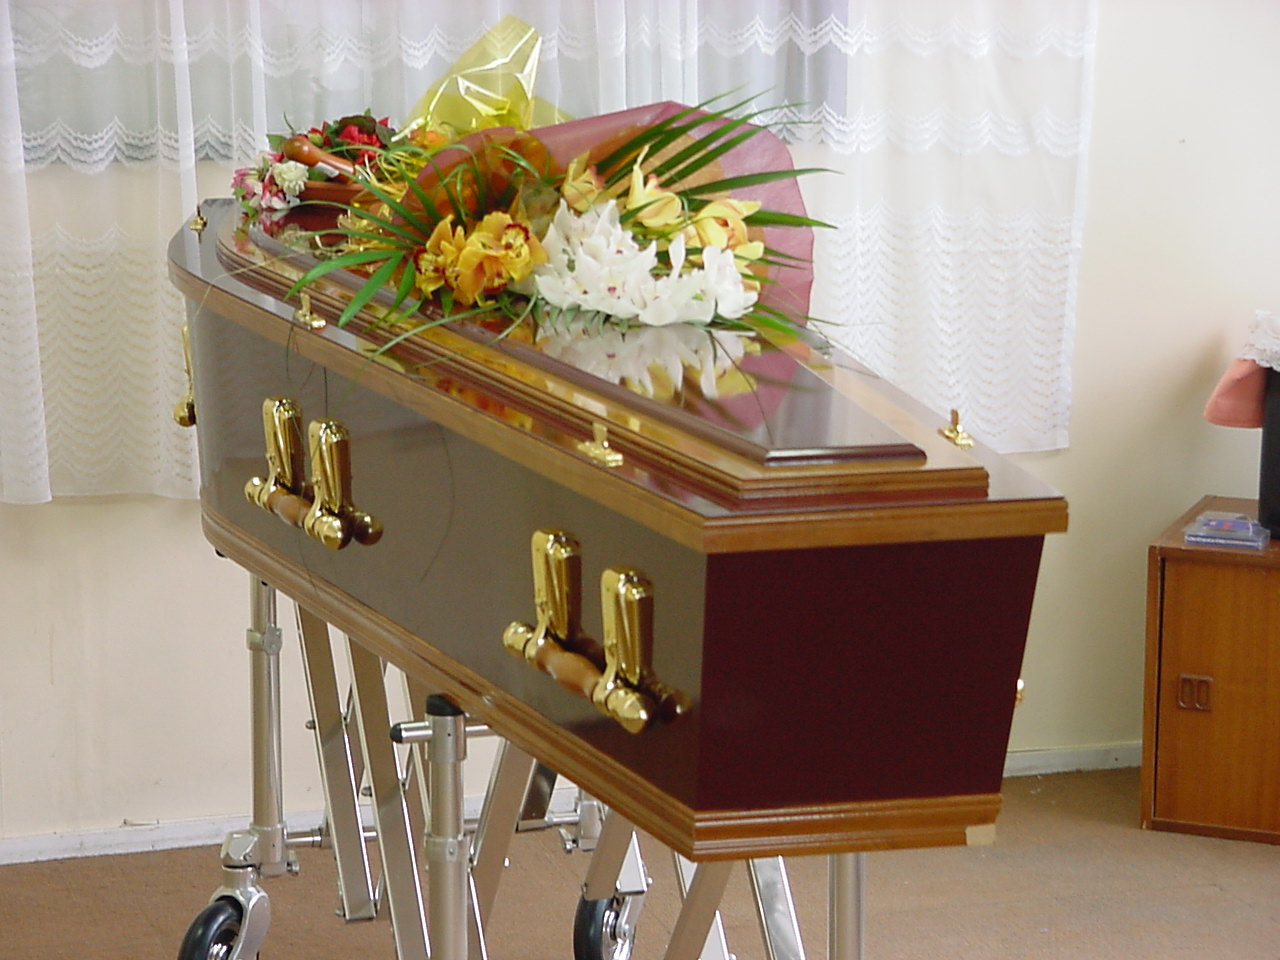 Decorated coffin in Palmerston North